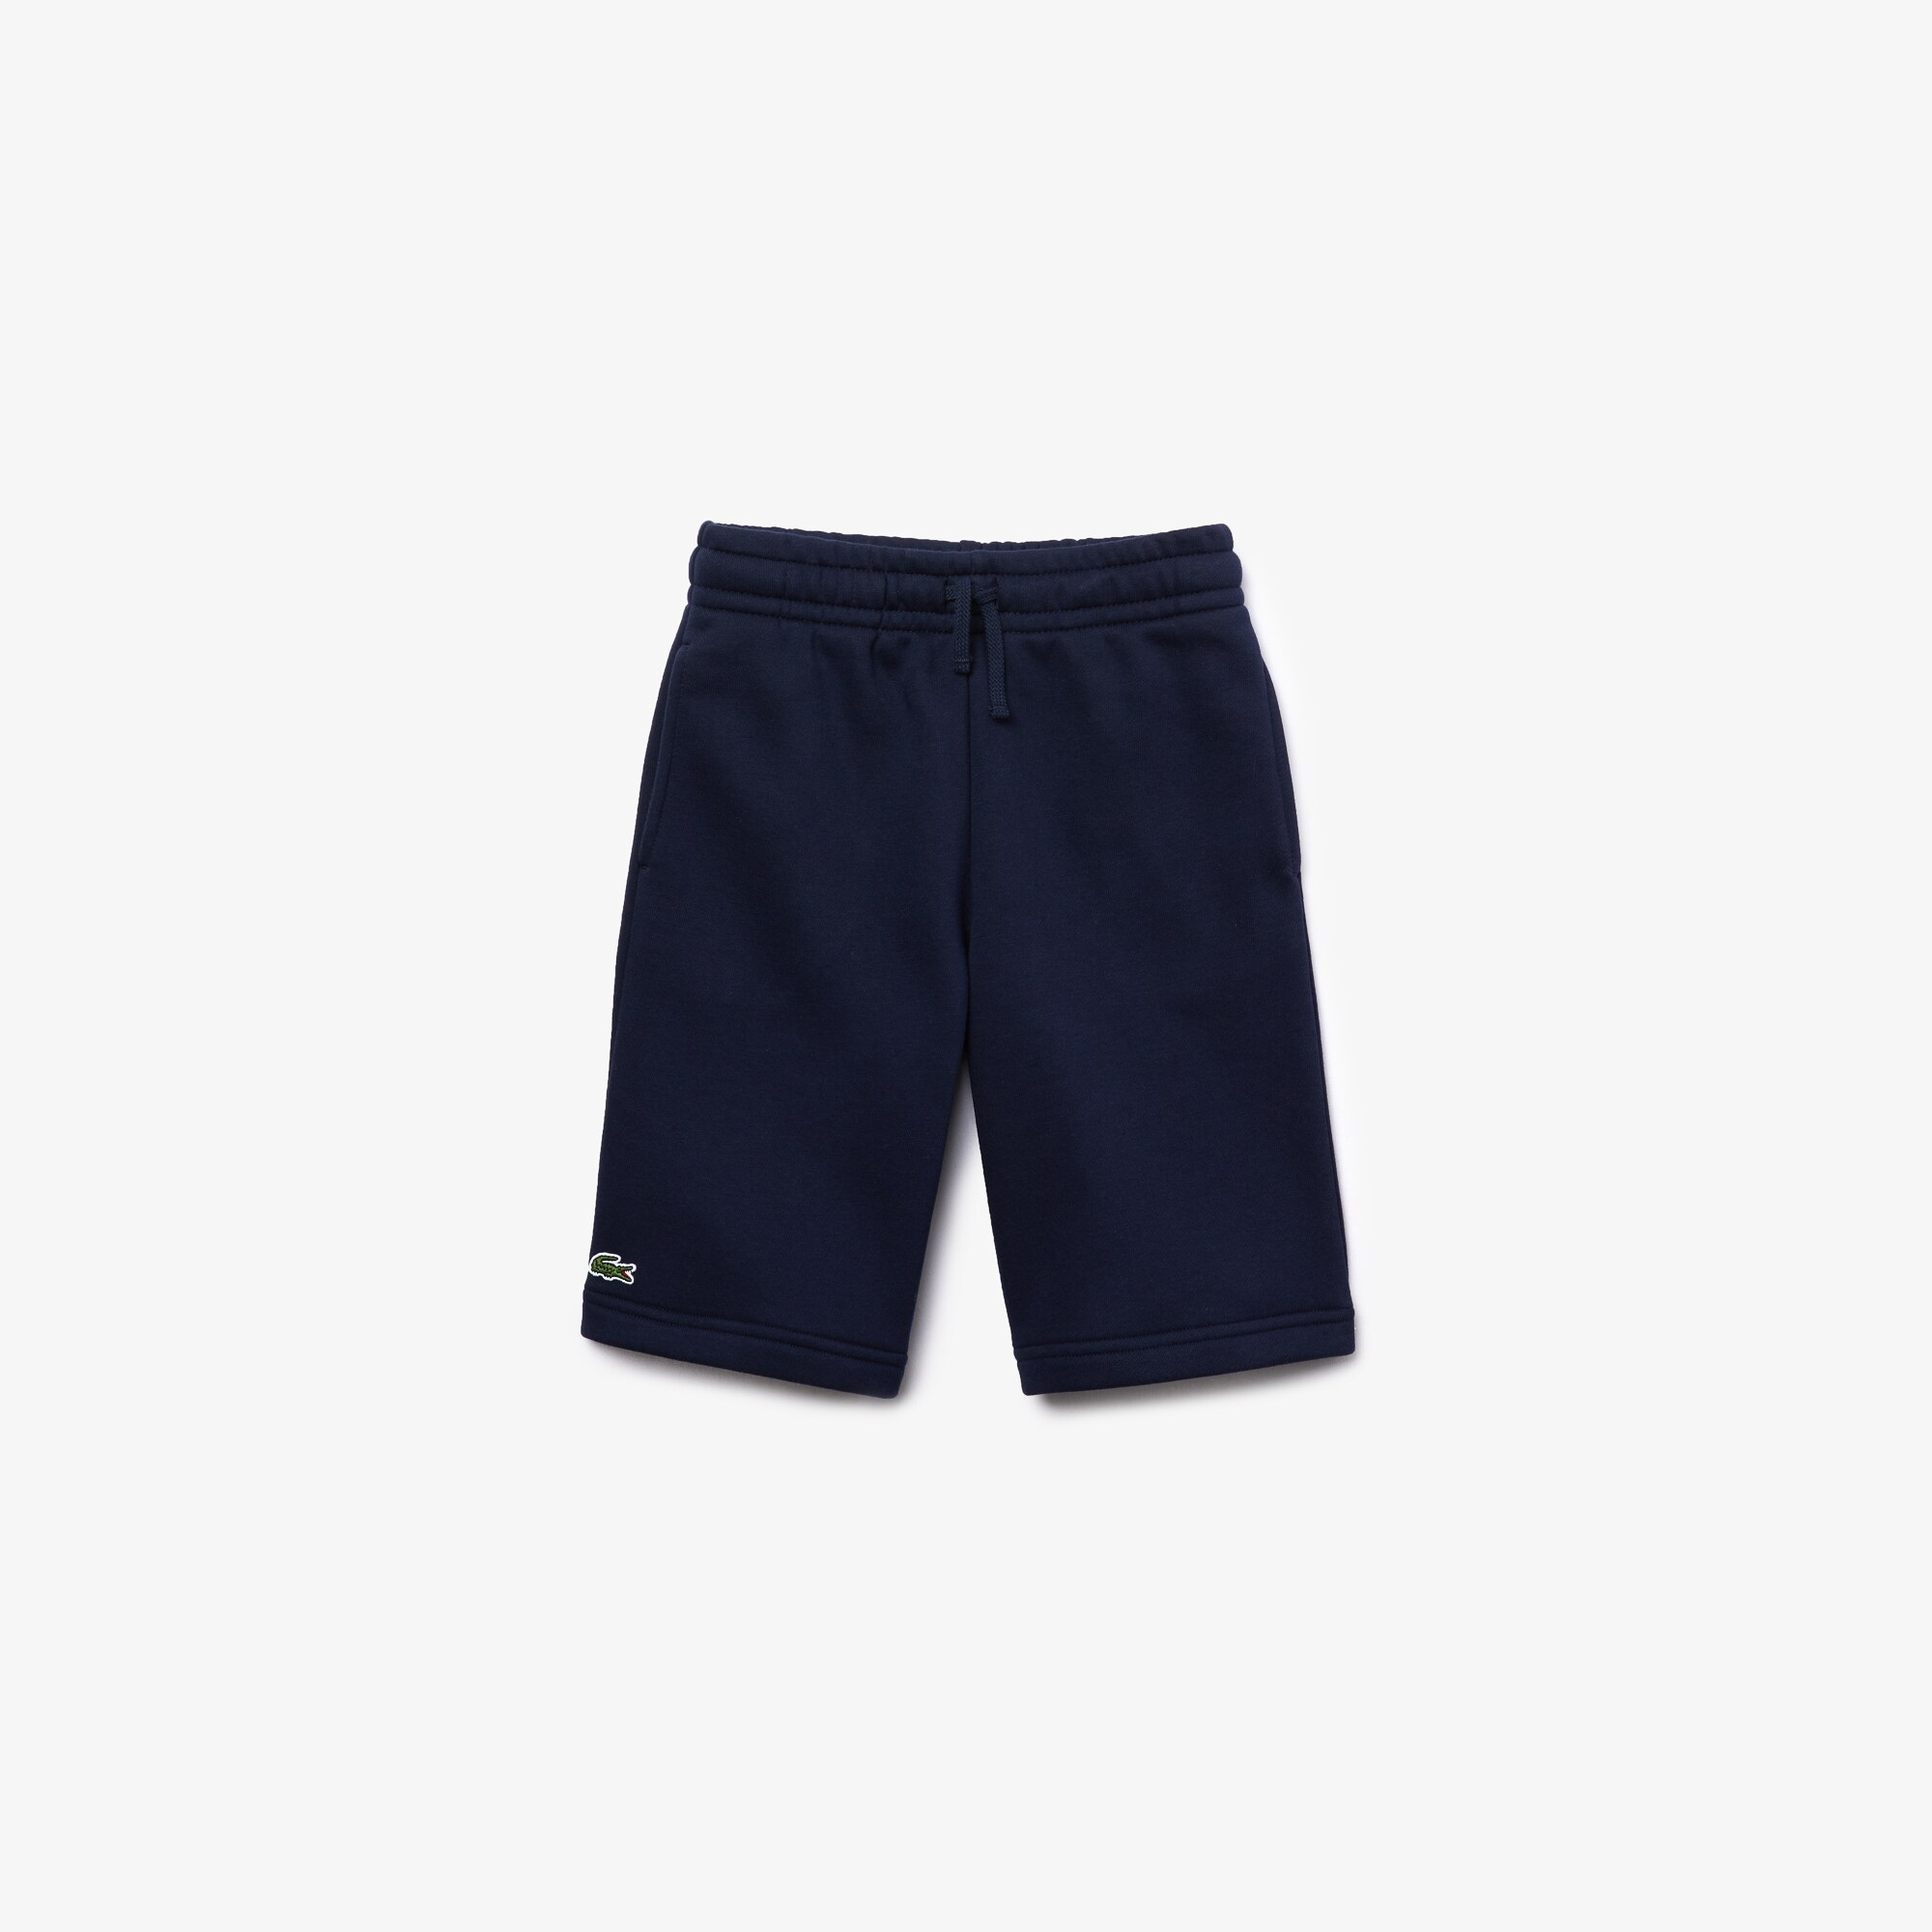 Boys' Lacoste SPORT Tennis Cotton Fleece Shorts